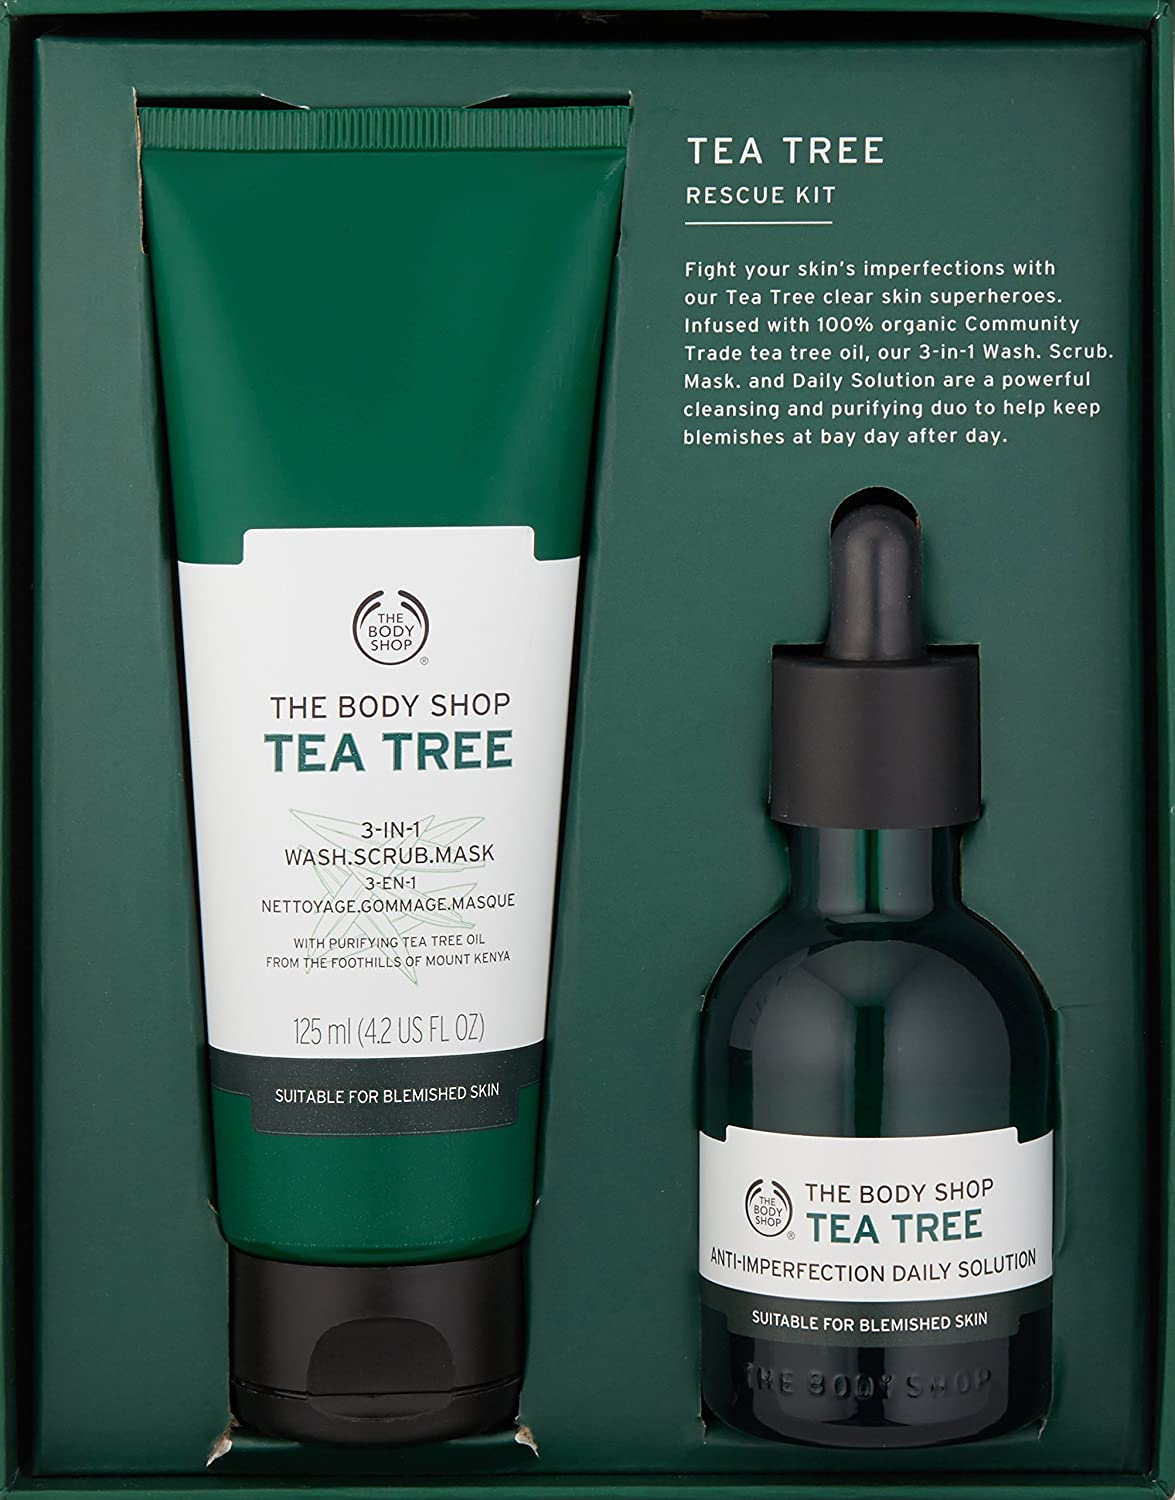 2 Pack - The Body Shop Tea Tree 3-in-1 Wash.Scrub.Mask, Made with Tea Tree Oil 4.2 oz Niacinamide Serum - 2oz - Vitamin B3 Serum Cream - Visibly Tightens Pores with Hyaluronic Acid, Avocado Fruit Oil, Vitamin E, Organic Aloe, and many other natural and organic ingredients